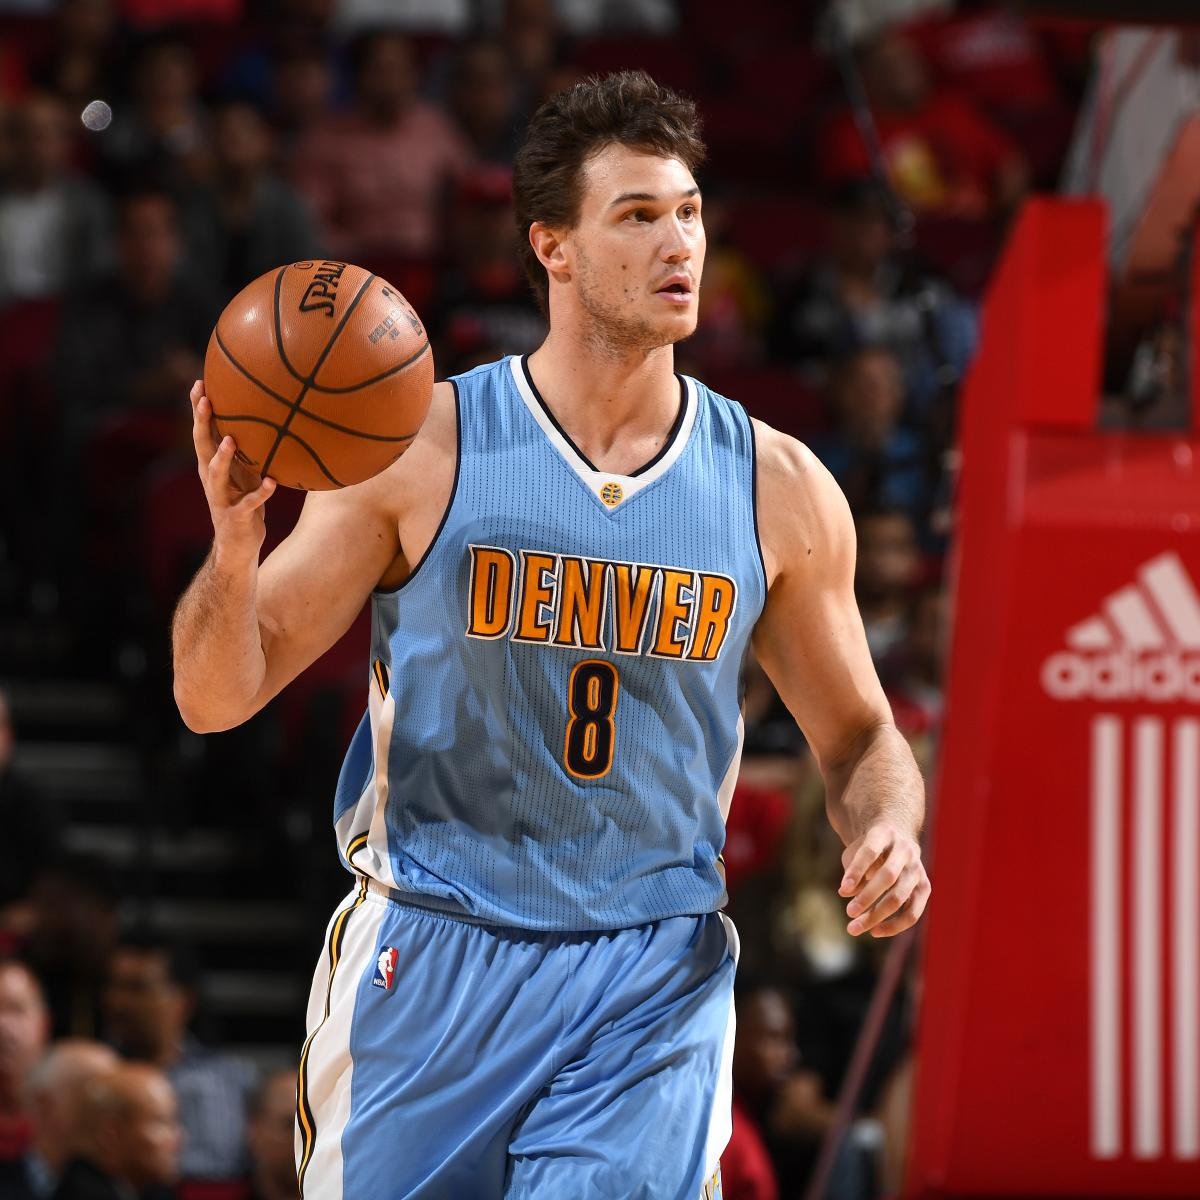 Nuggets Clippers Highlights: Danilo Gallinari Reportedly To Decline Nuggets Contract